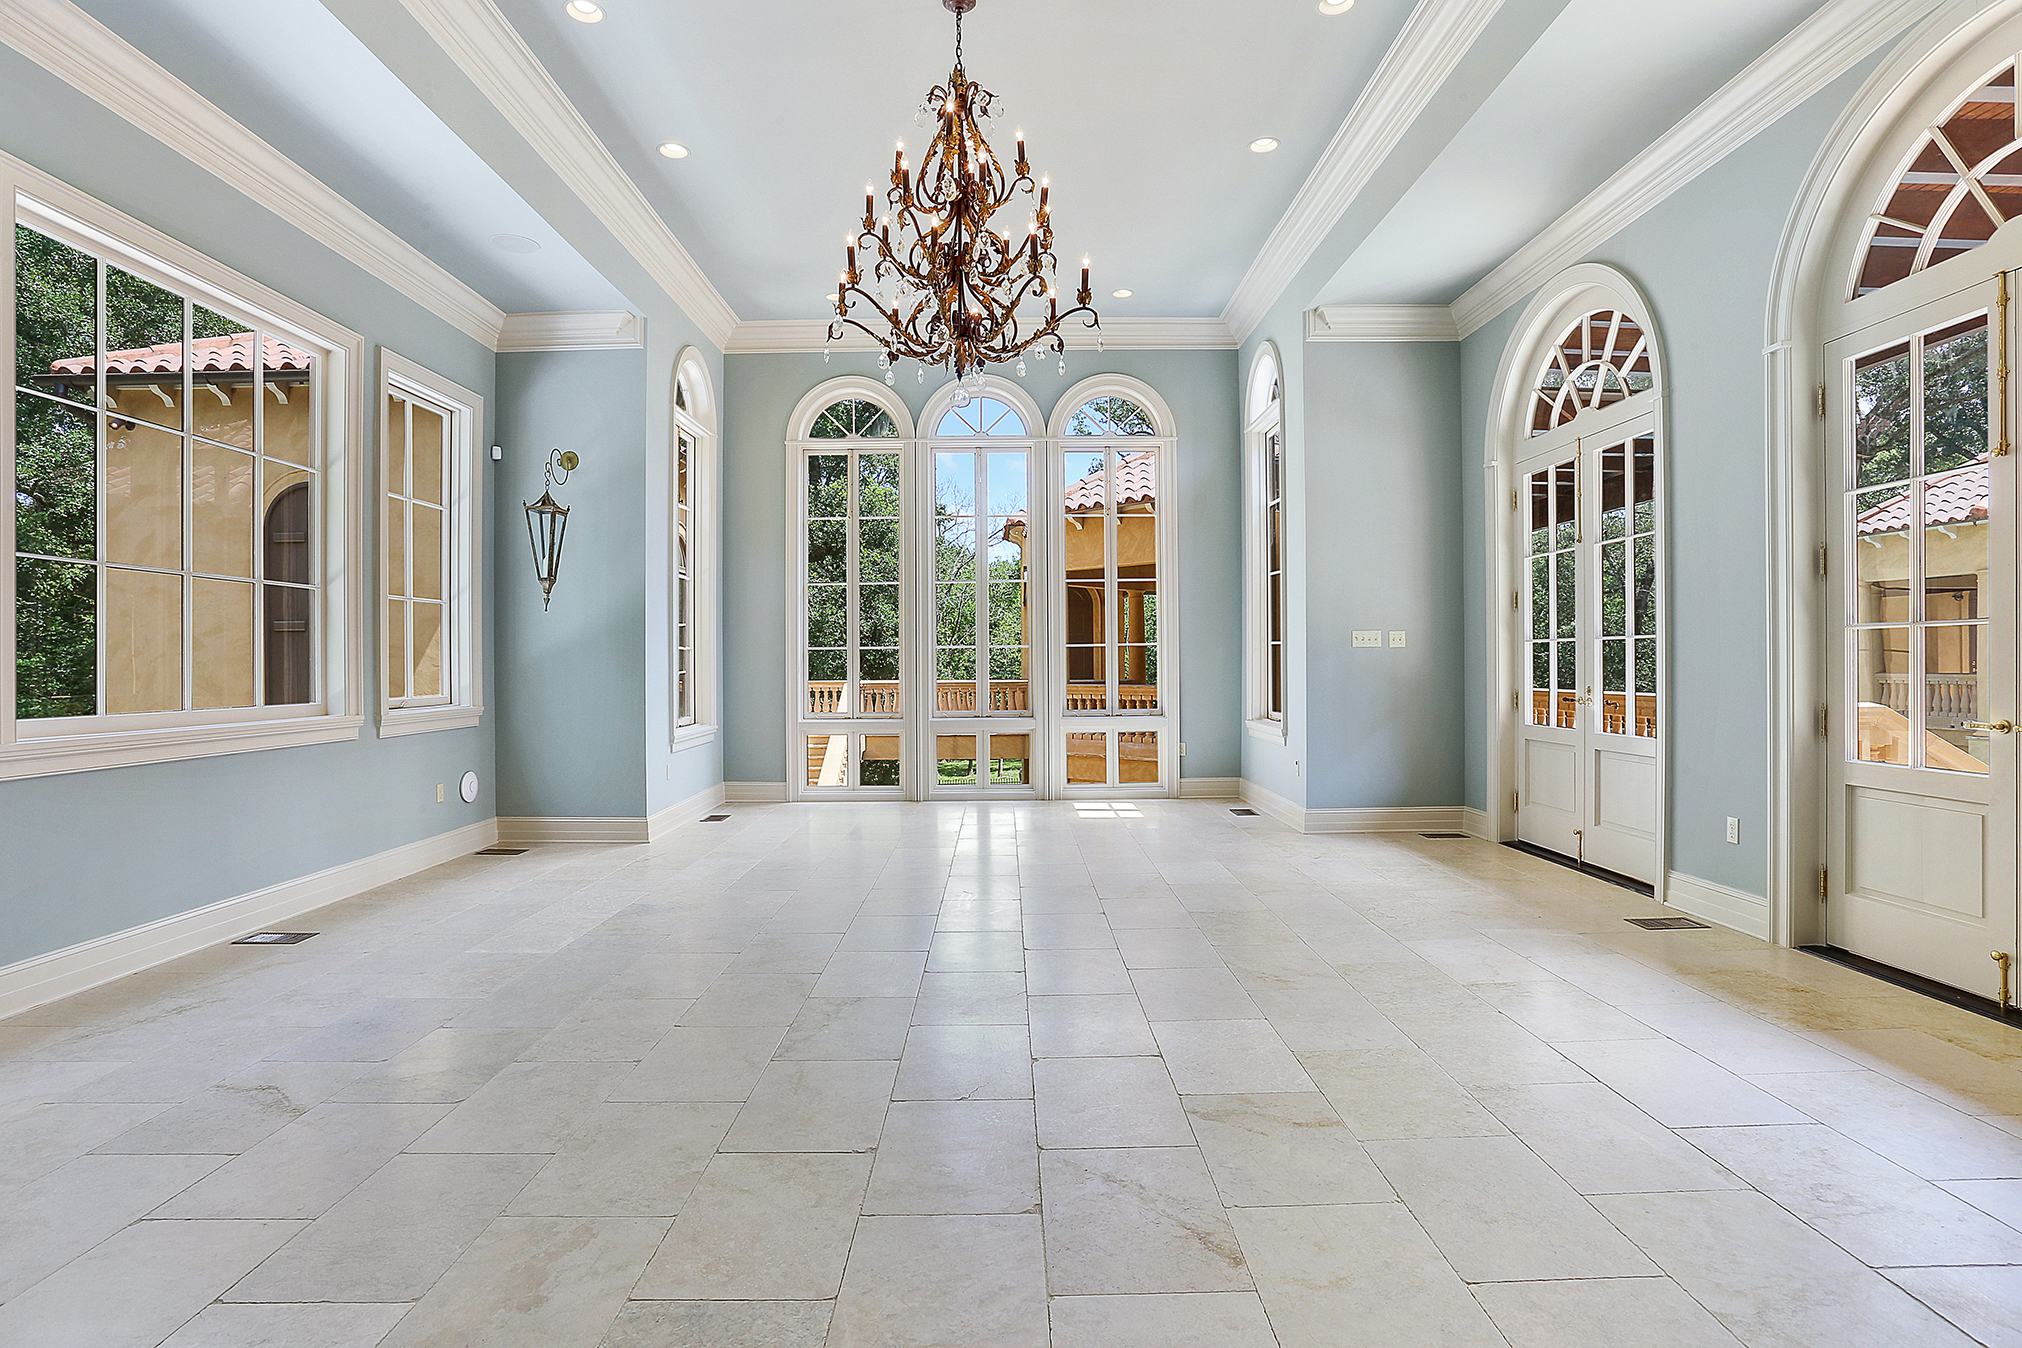 Great estates: Luxury homes at the top of the local market ...